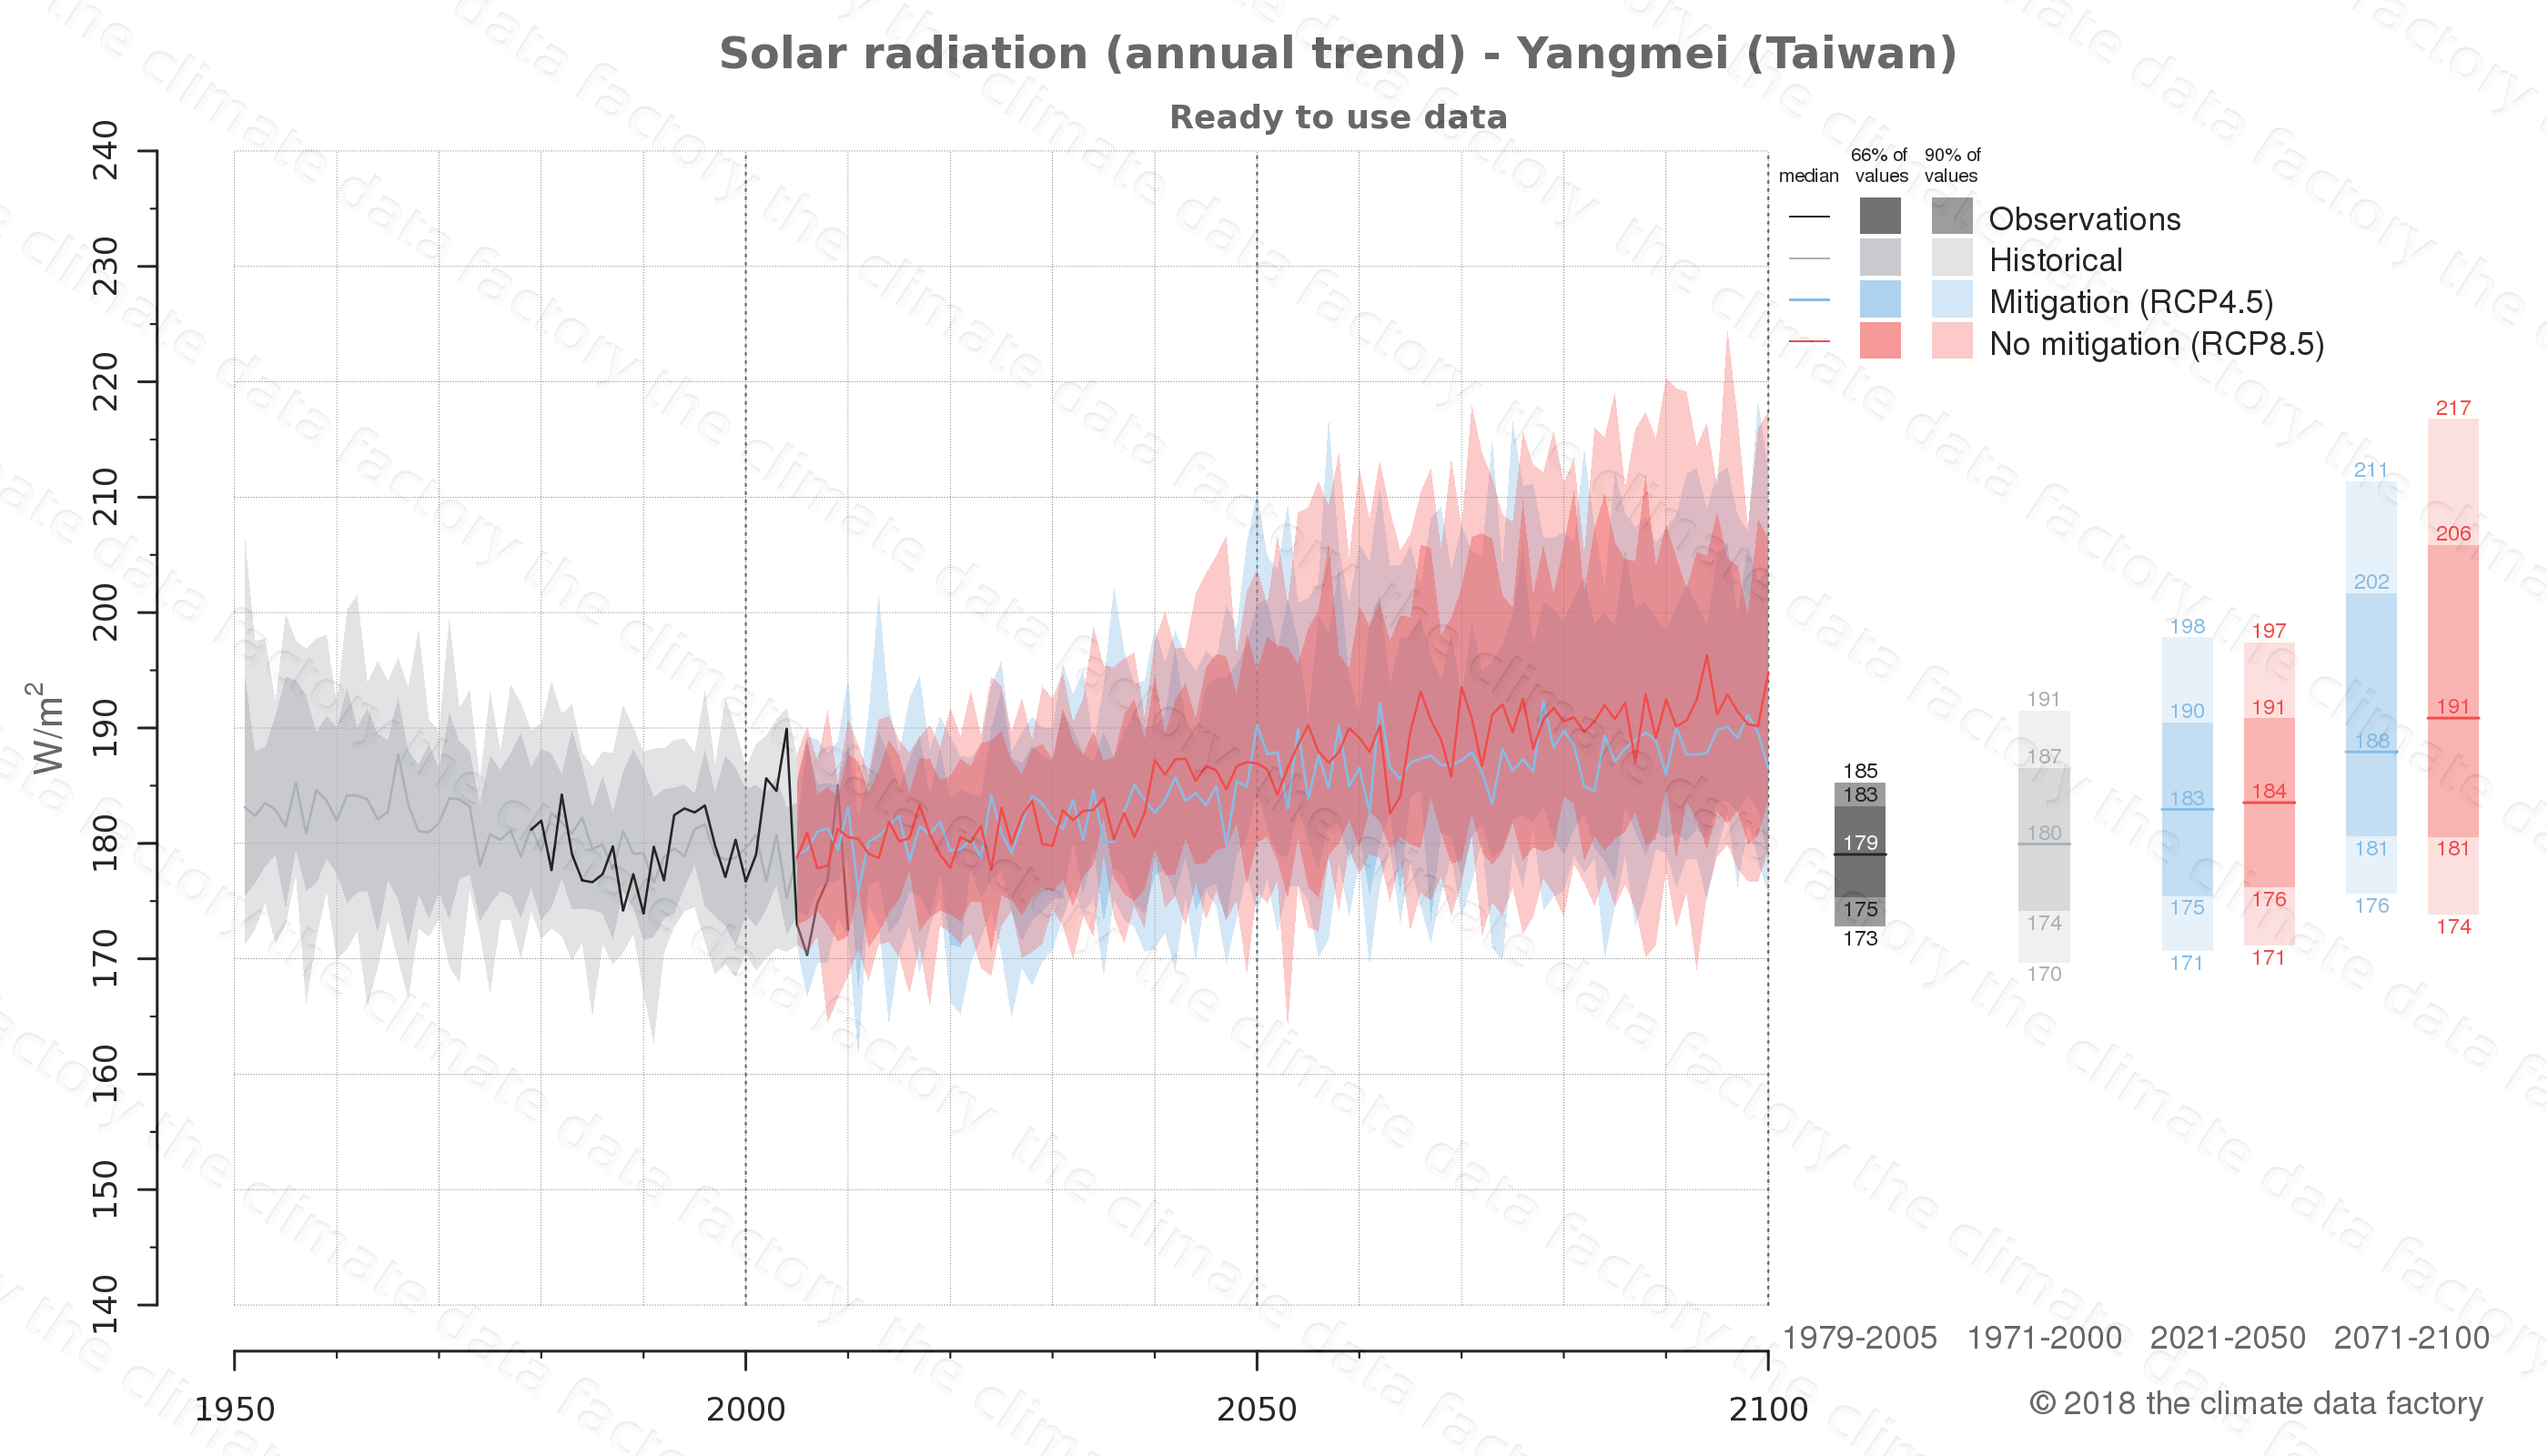 climate change data policy adaptation climate graph city data solar-radiation yangmei taiwan